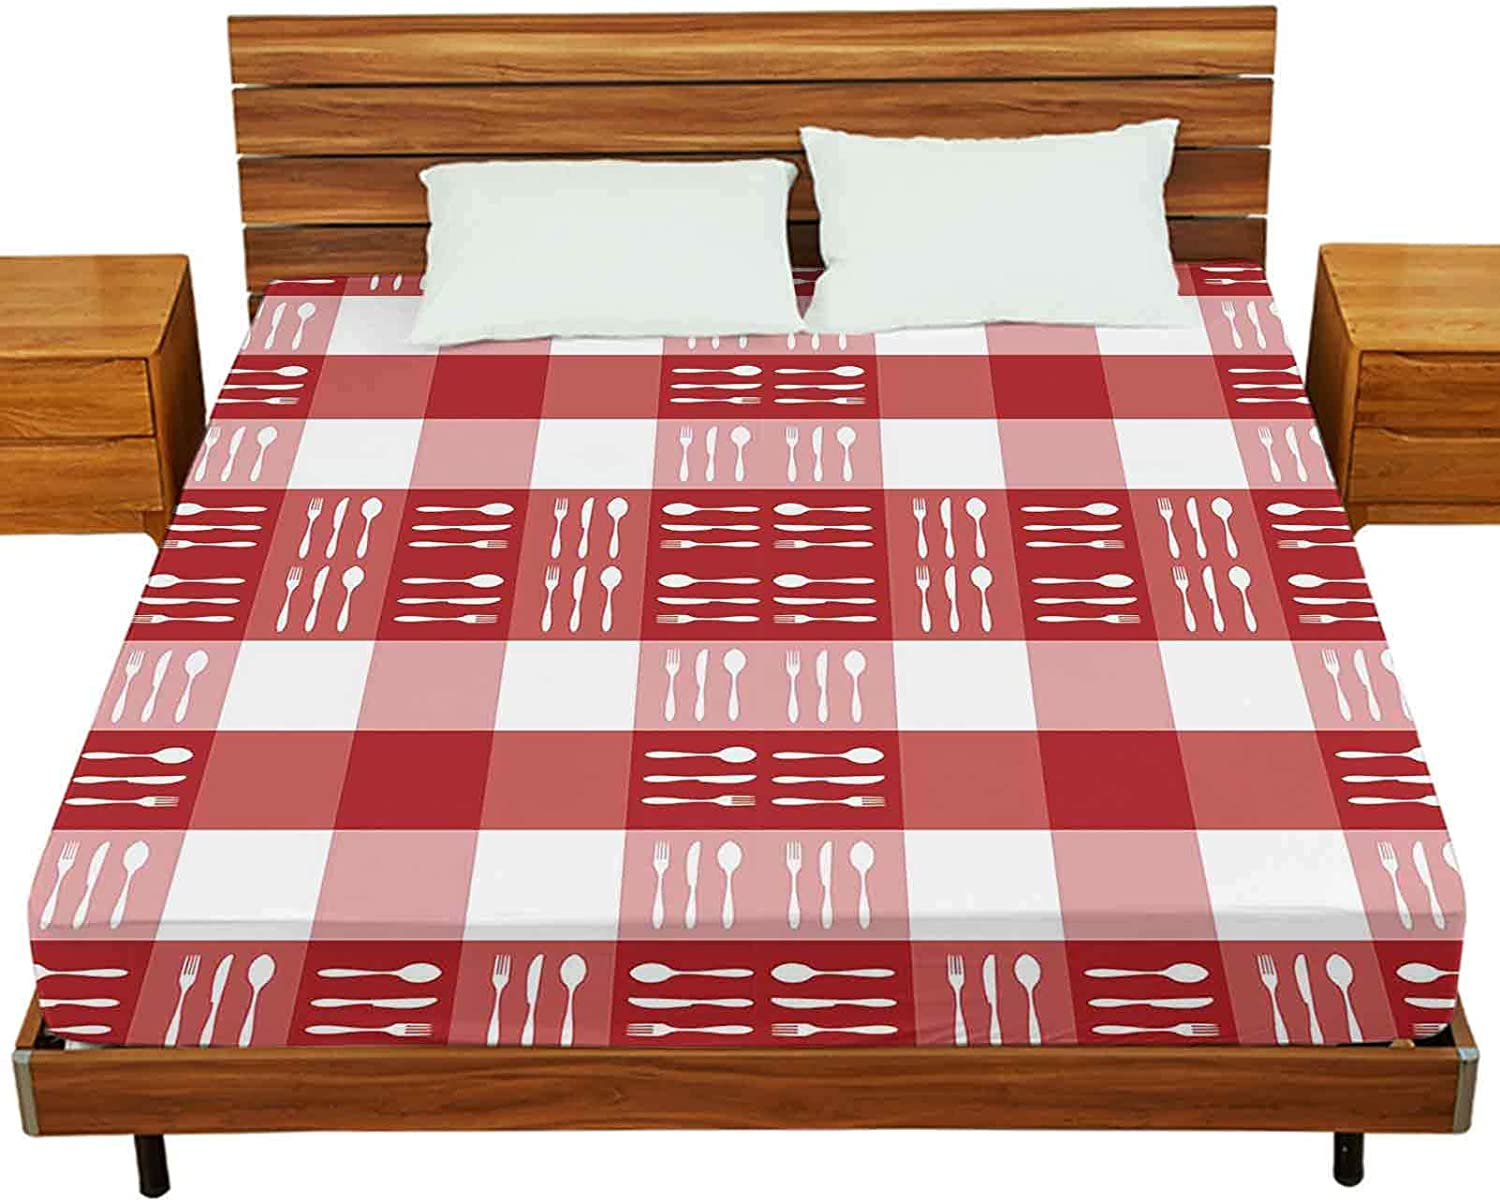 Bed Sheet Set Full Size, Food, Restaurant, menu Design with Cutlery Silhouettes Pattern on red Tablecloth Texture., 1 Single Fitted Sheet Only